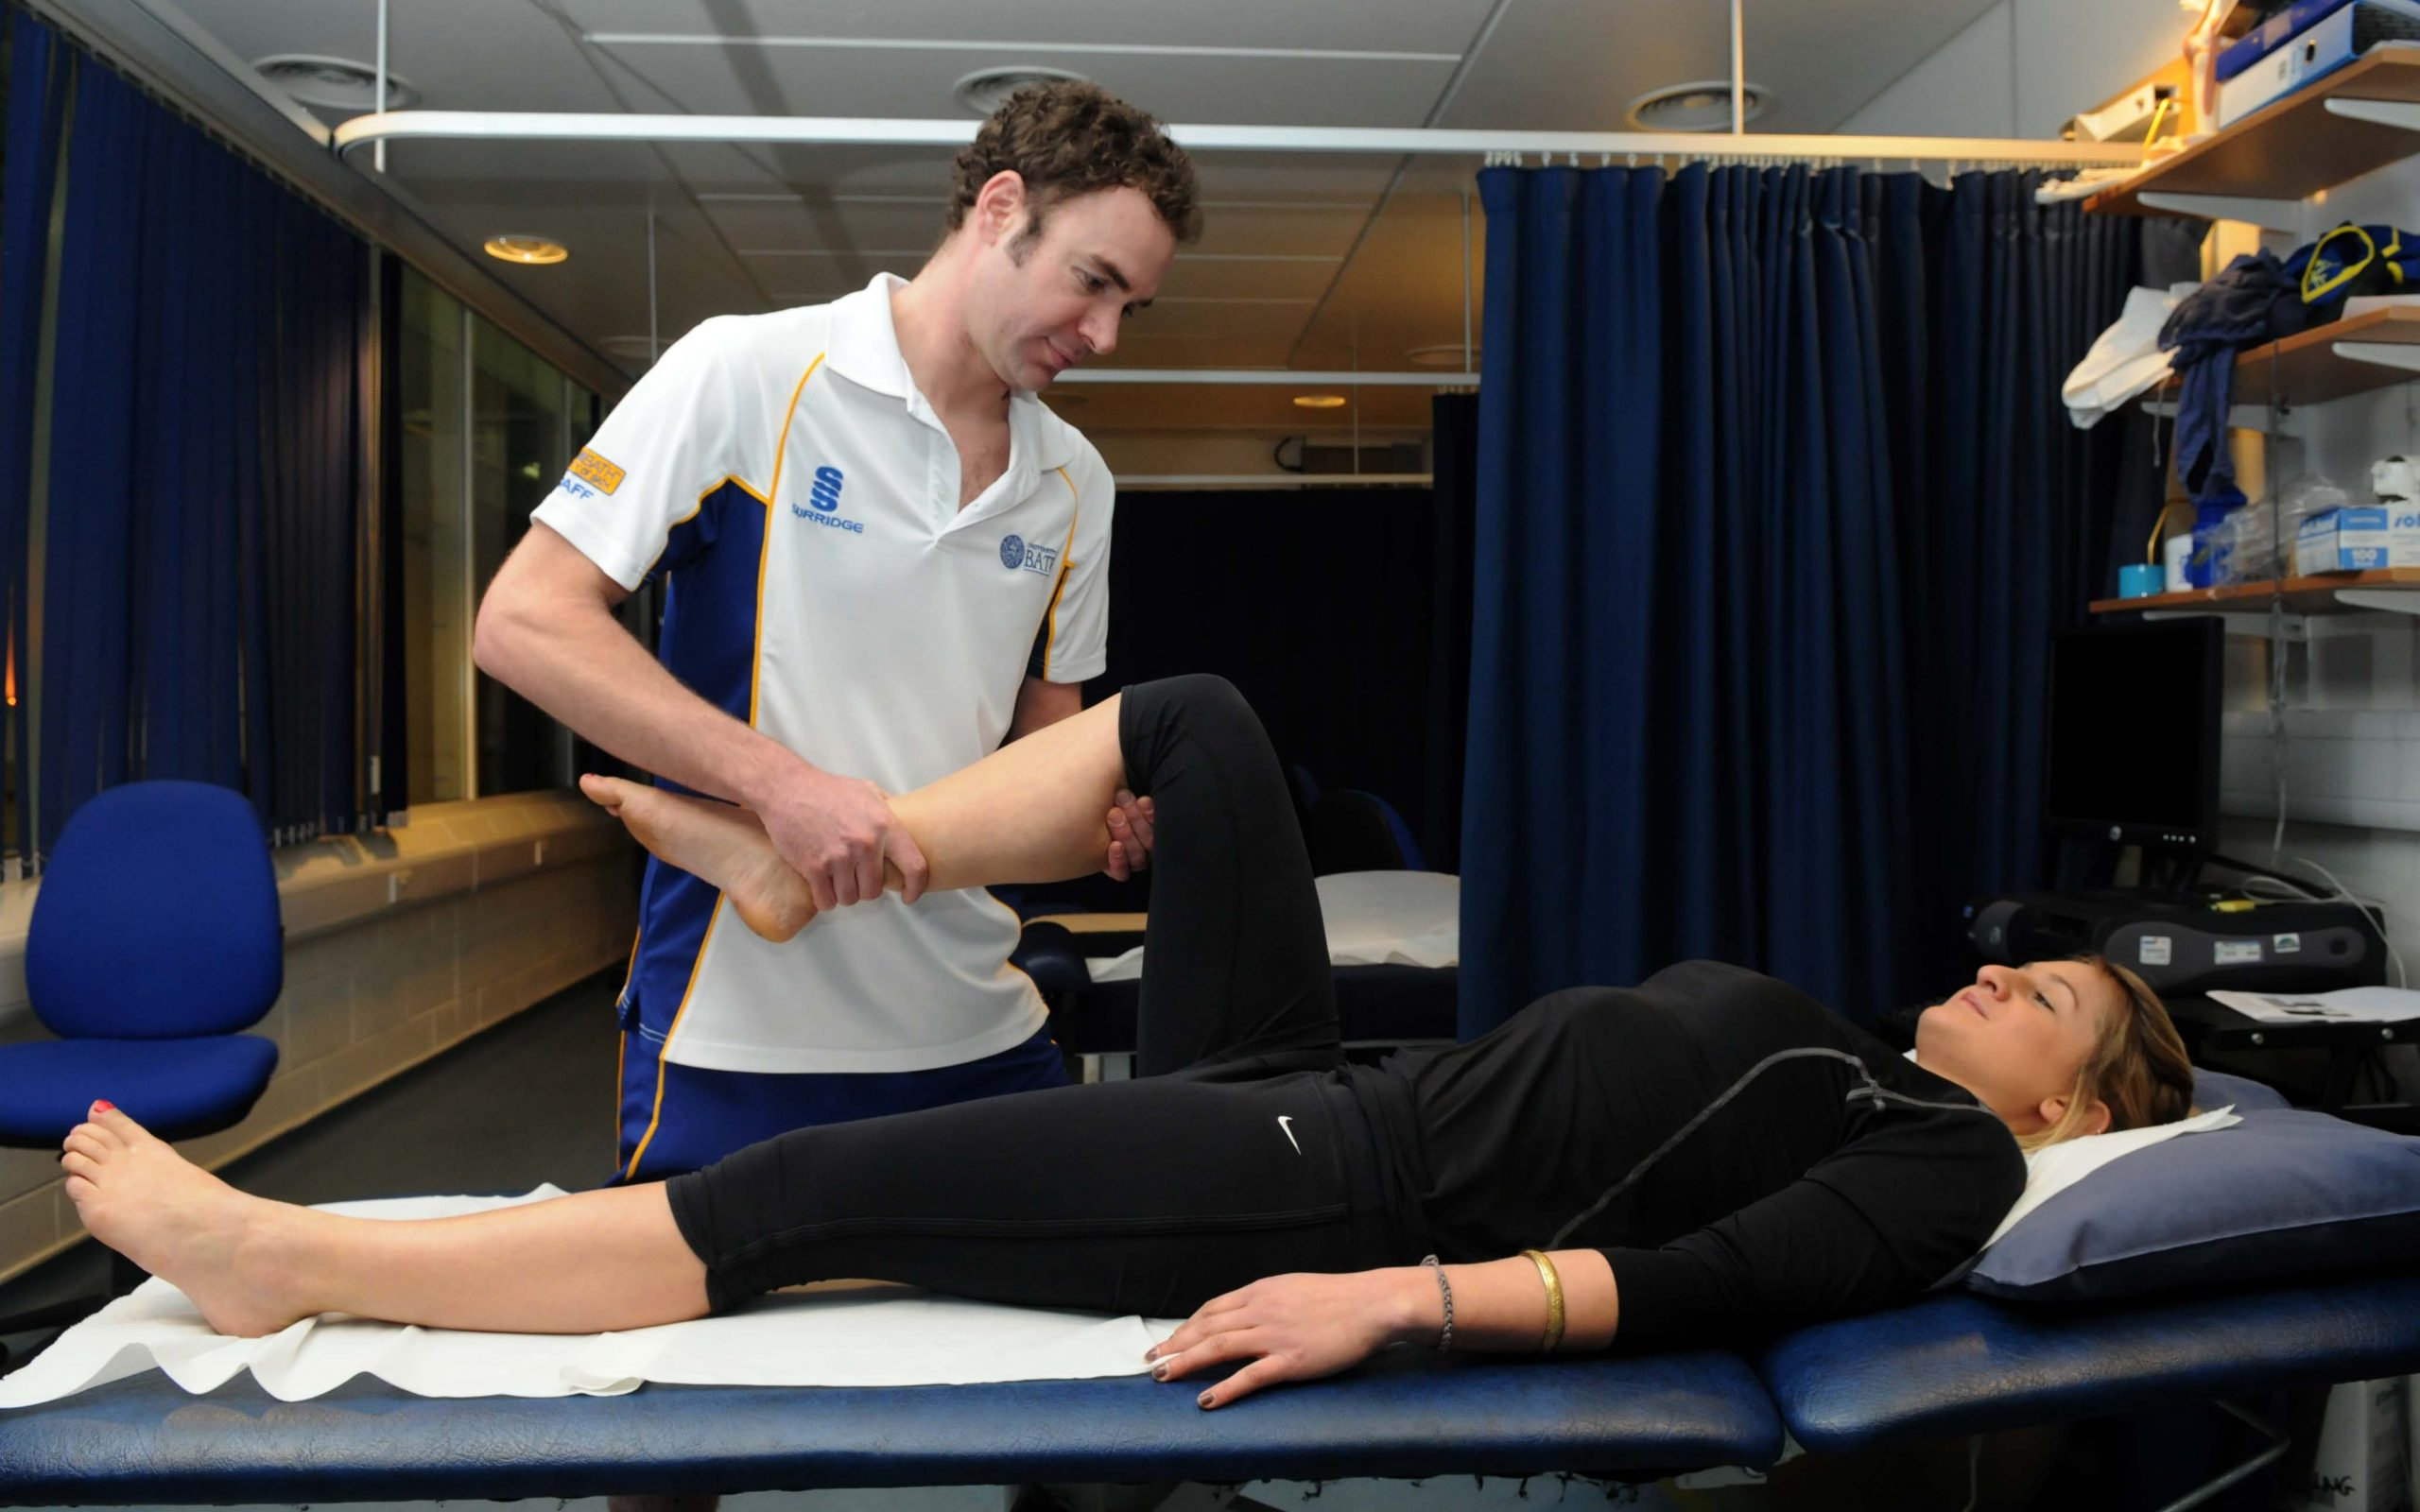 Brunette male physiotherapist holding leg of blond woman while she lies down on table